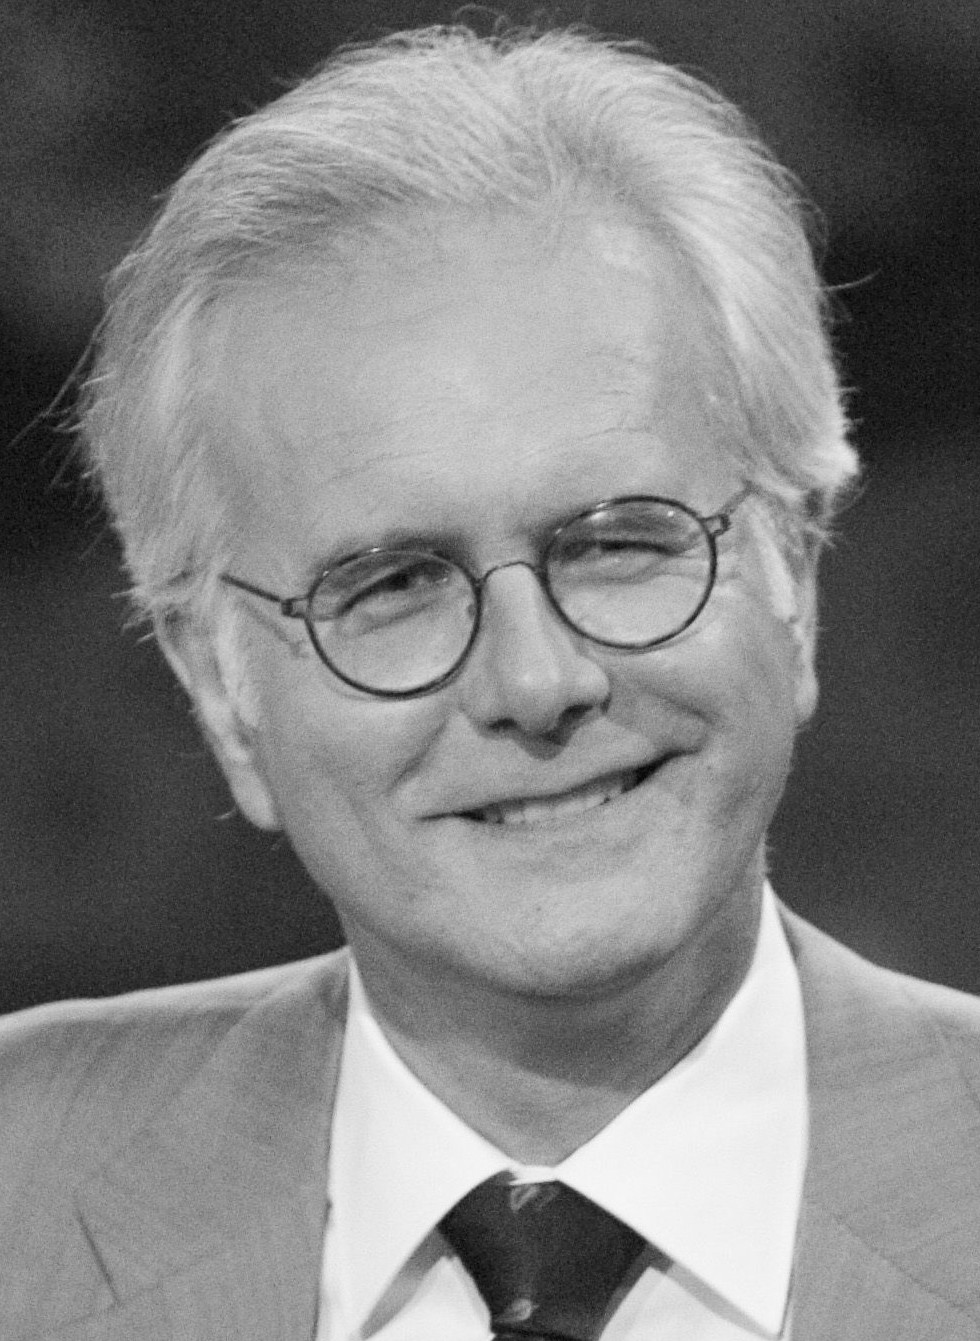 photo#08, <b>Harald Schmidt</b> - harald-schmidt-09